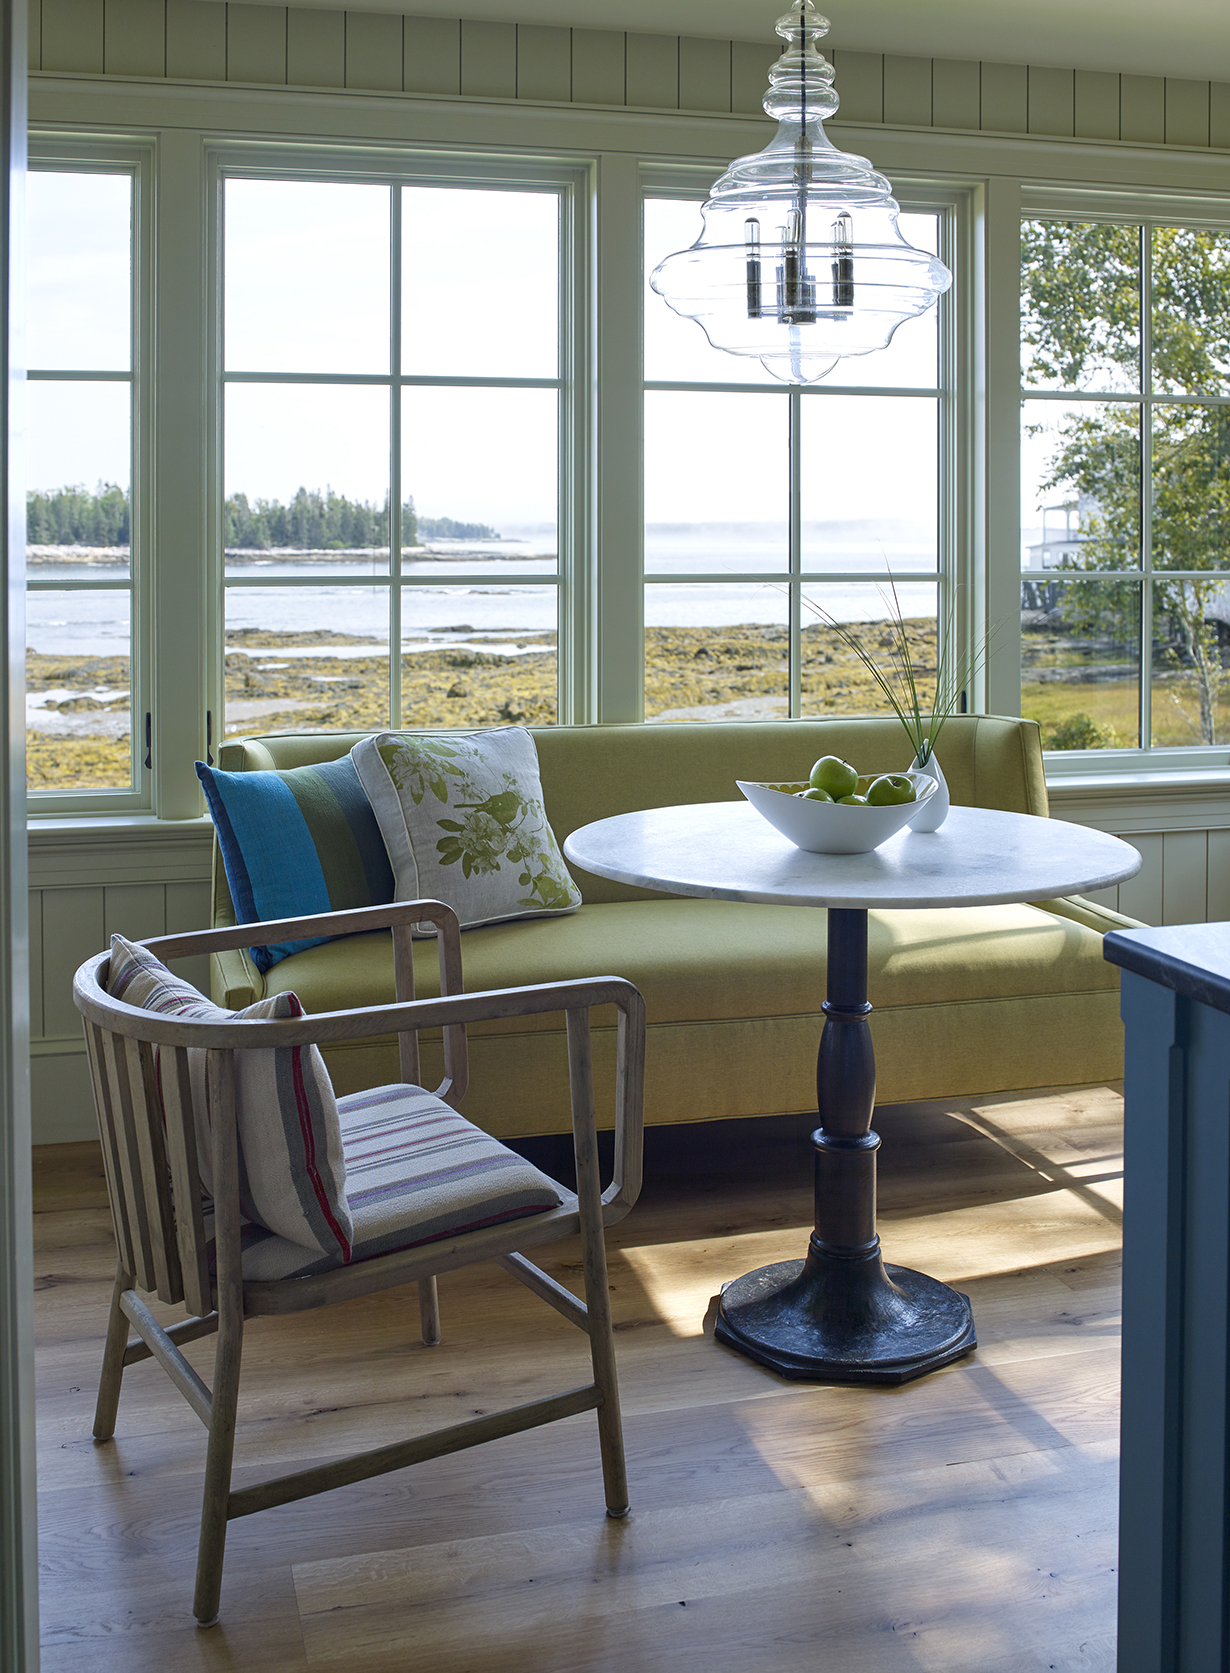 knickerbocker-group-project-capitol-island-cottage-family-coastal-living